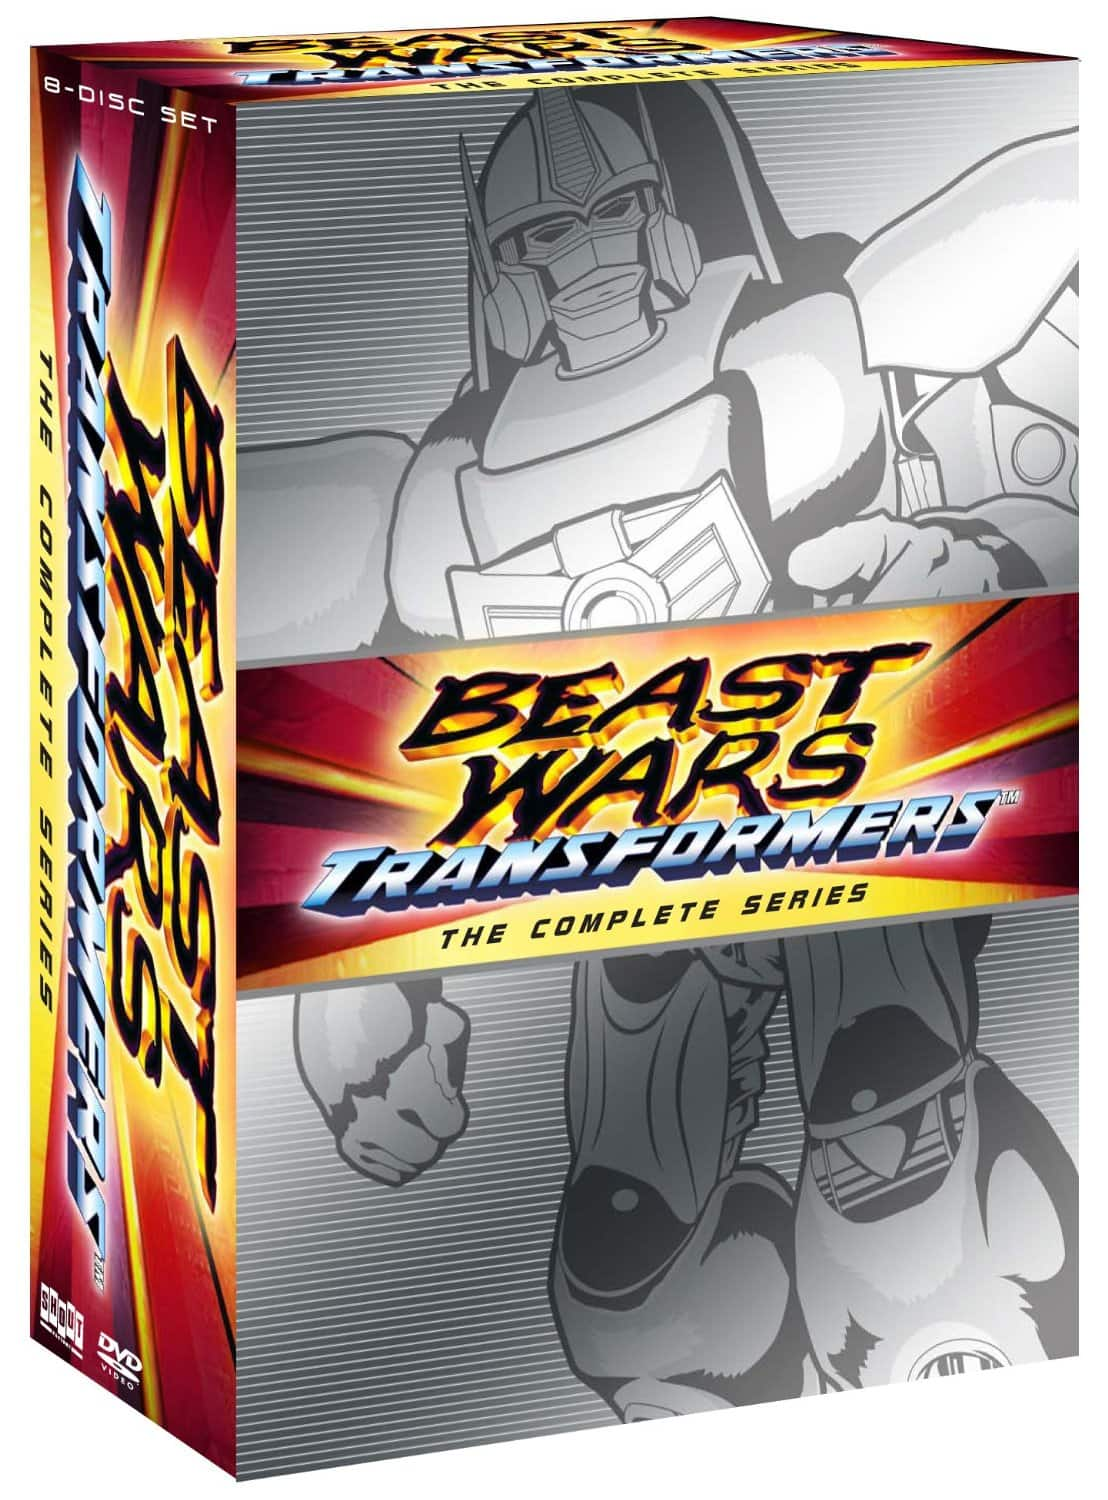 Beast Wars: Transformers The Complete Series (DVD)  $20